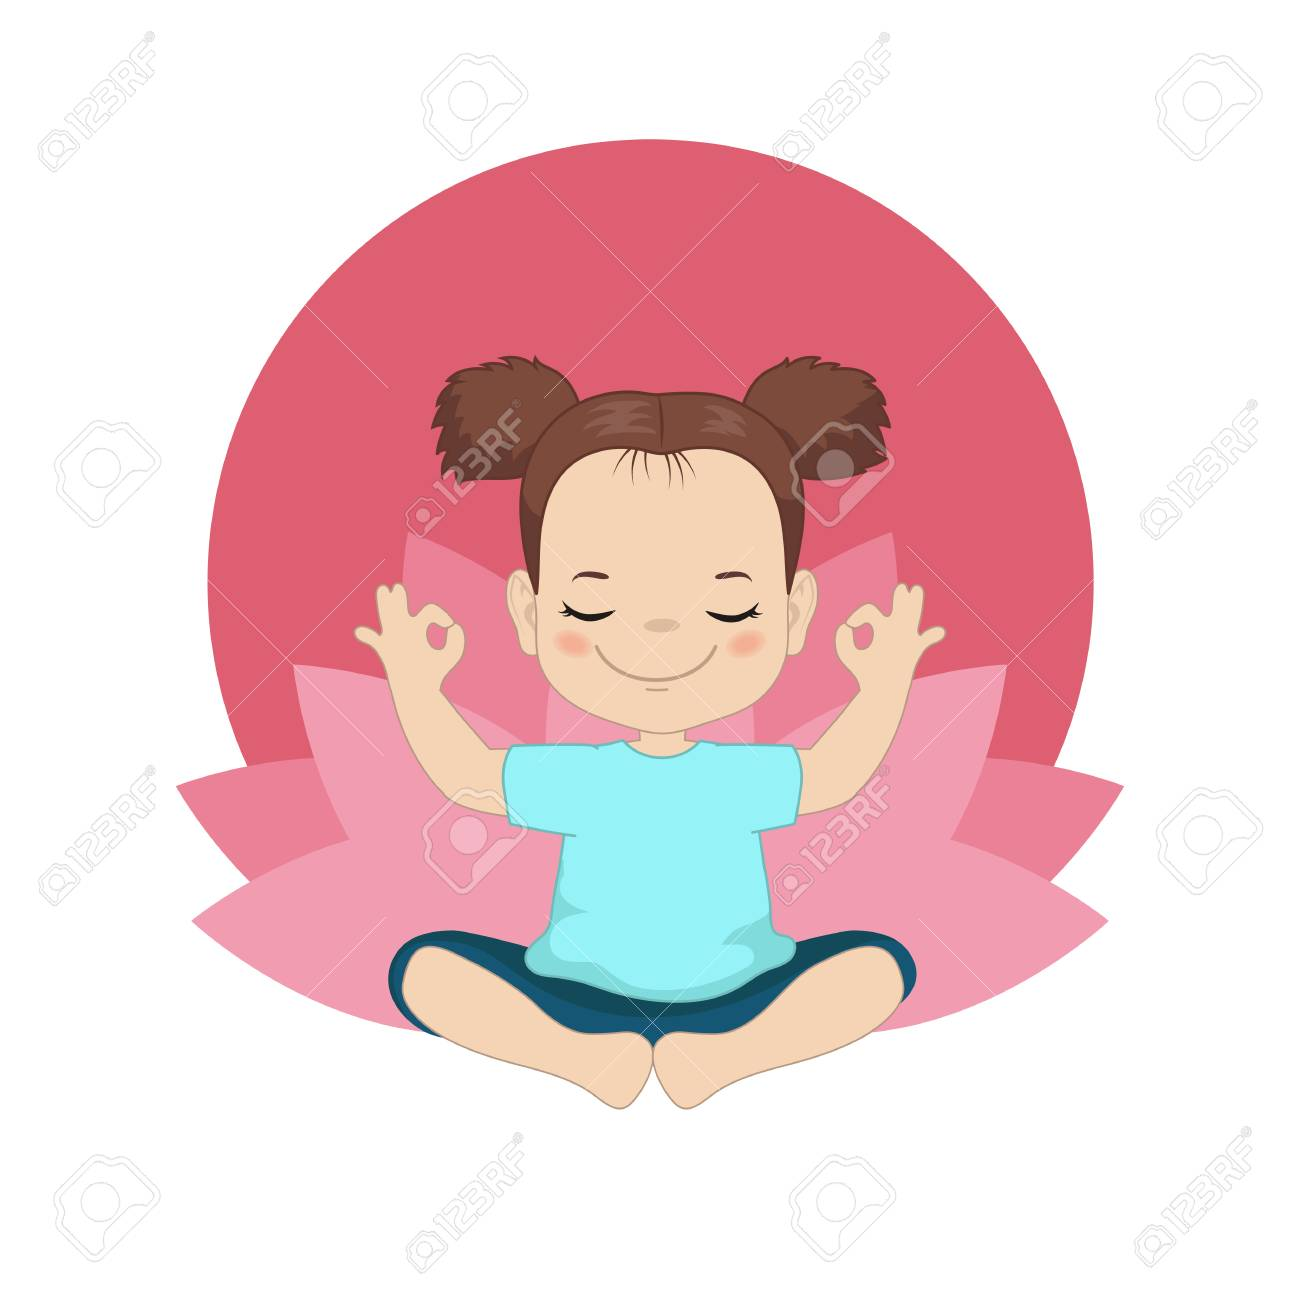 Kids yoga design concept with girl in yoga position